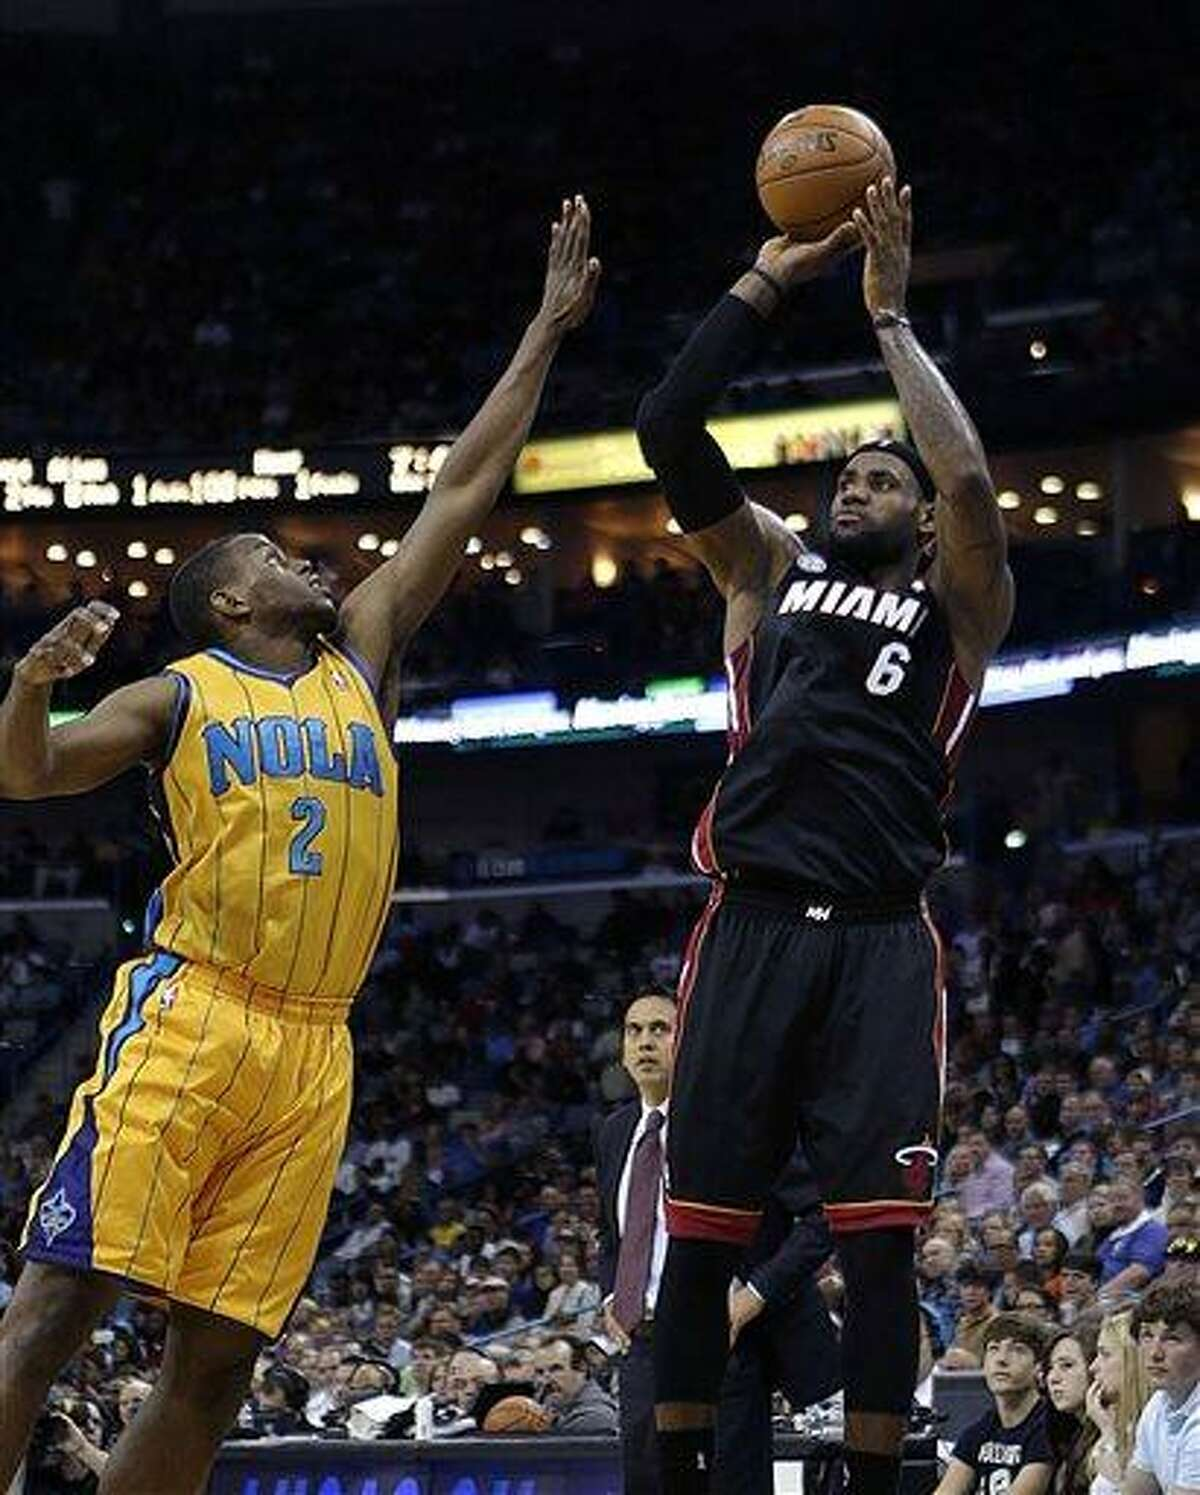 Miami Heat forward LeBron James (6) takes a 3-point shot in front of New Orleans Hornets forward Darius Miller (2) in the first half of an NBA basketball game in New Orleans, Friday, March 29, 2013. (AP Photo/Gerald Herbert)